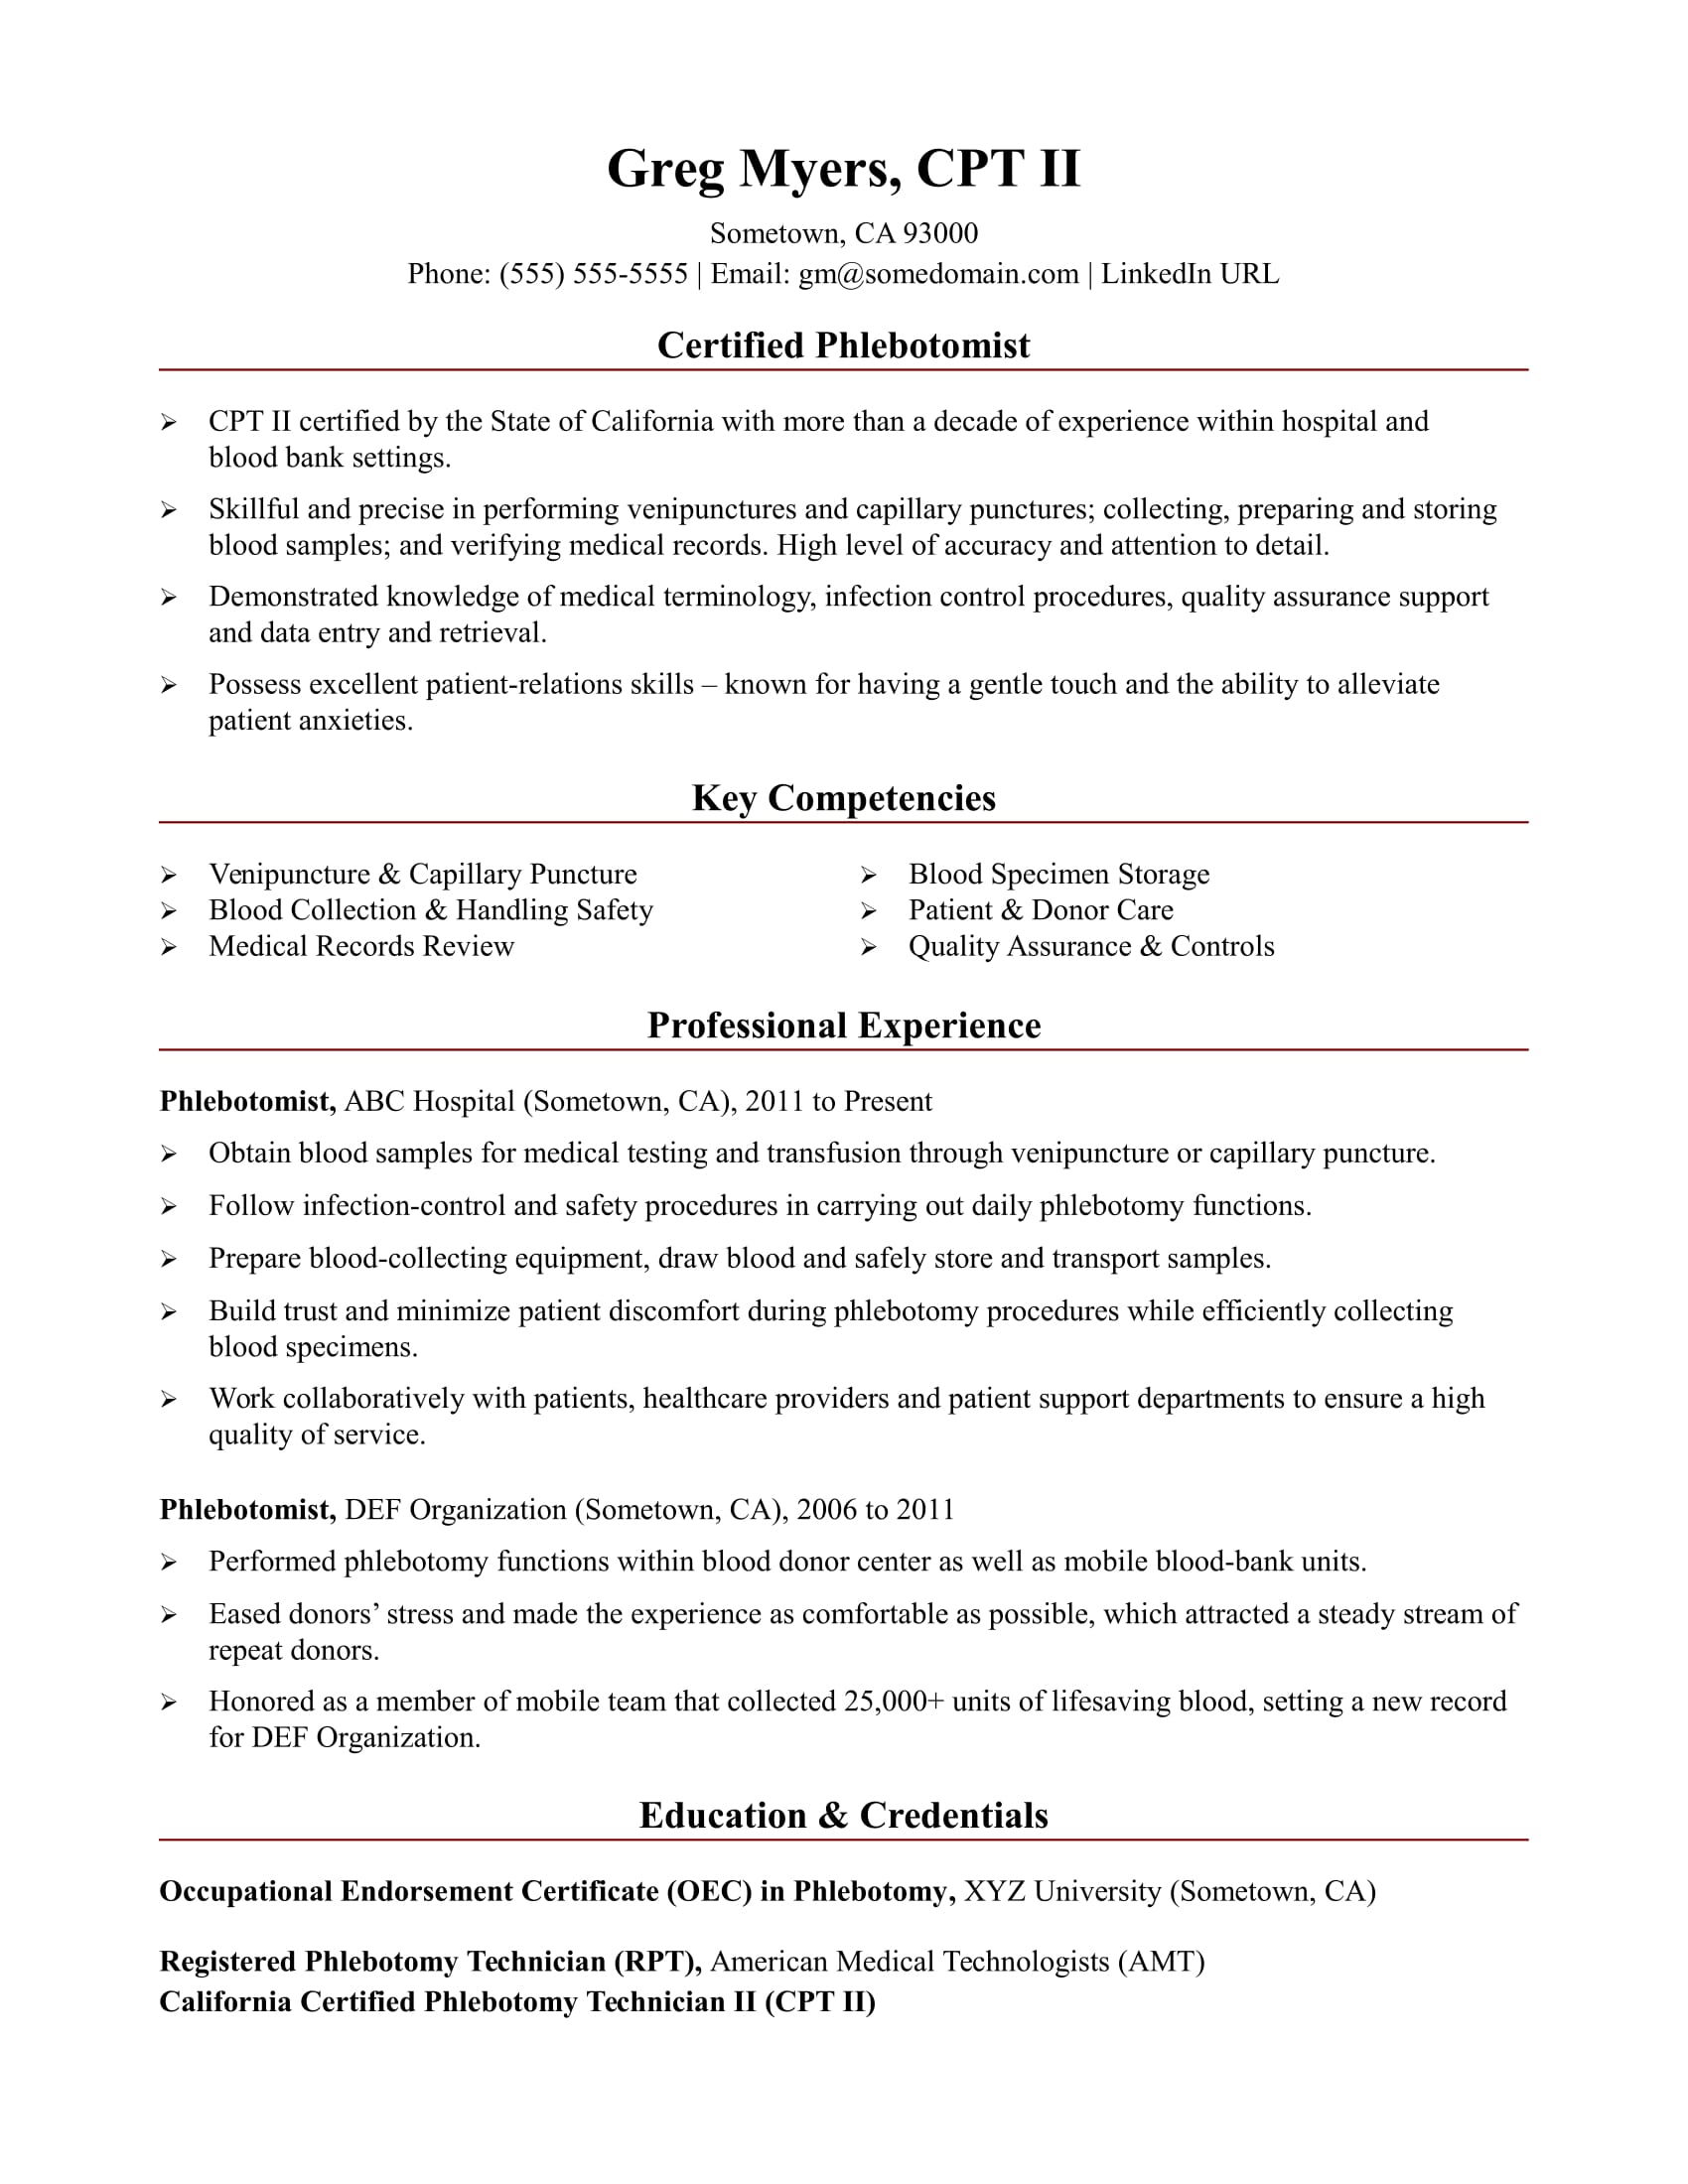 sample resume for a phlebotomist - Monster Sample Resume